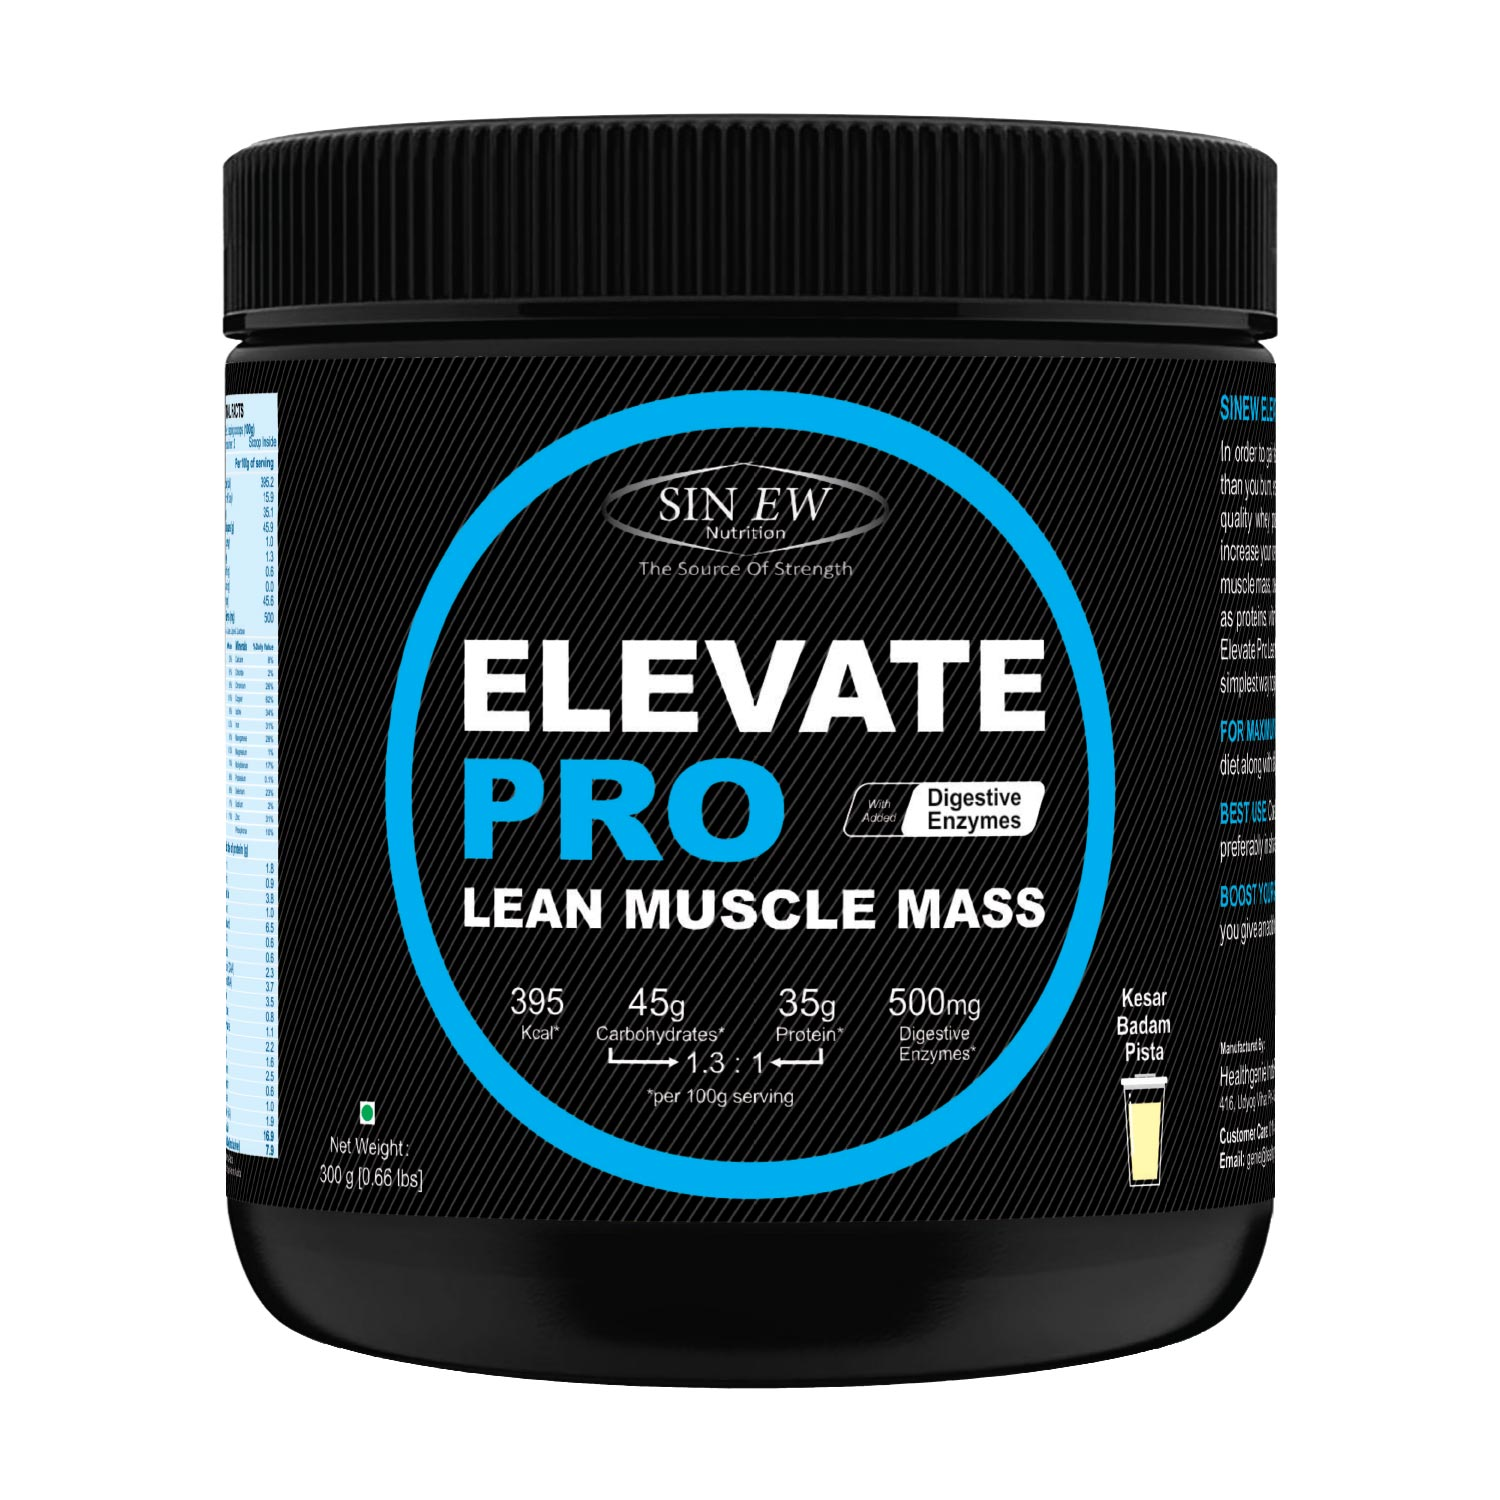 Elevate Pro Lean Muscle Mass (kbp) 300g F